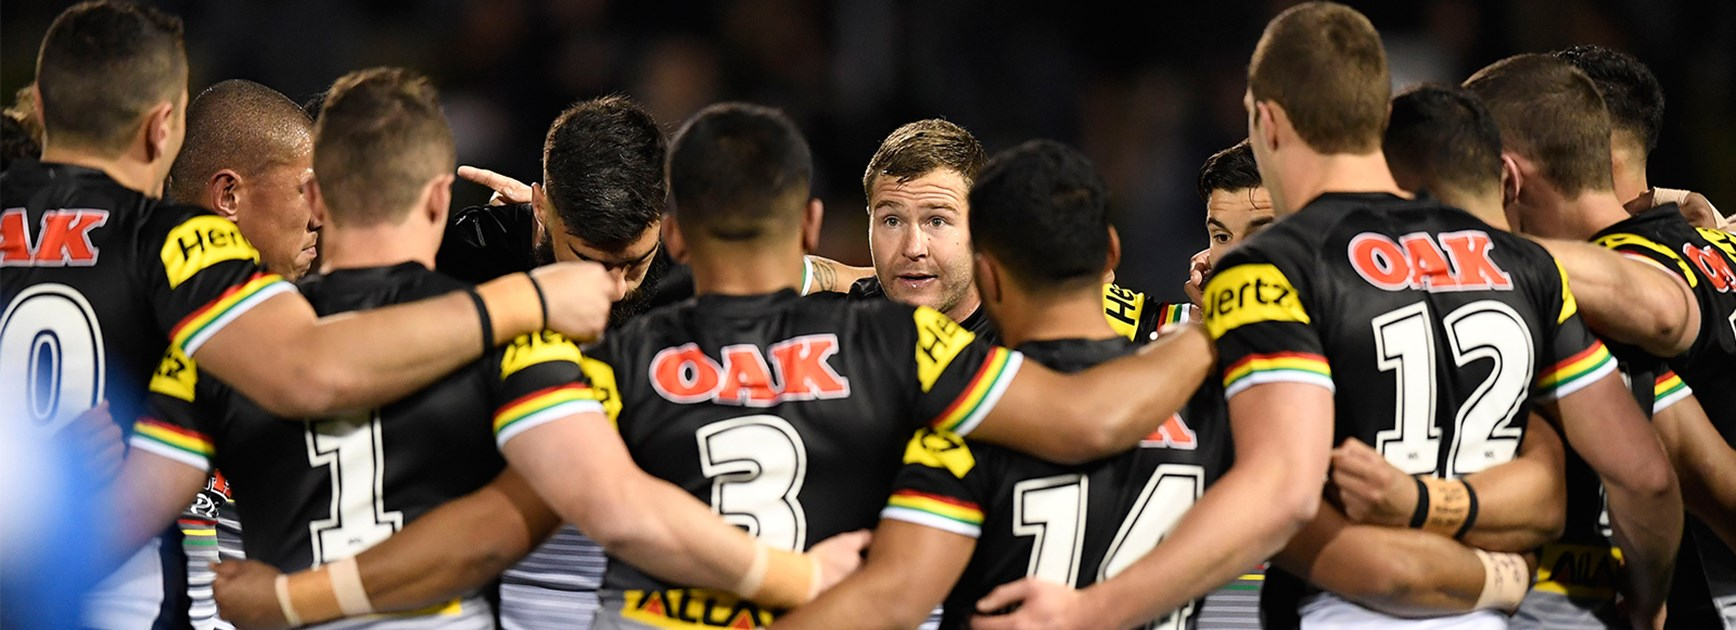 Forwards aim up in Panthers win